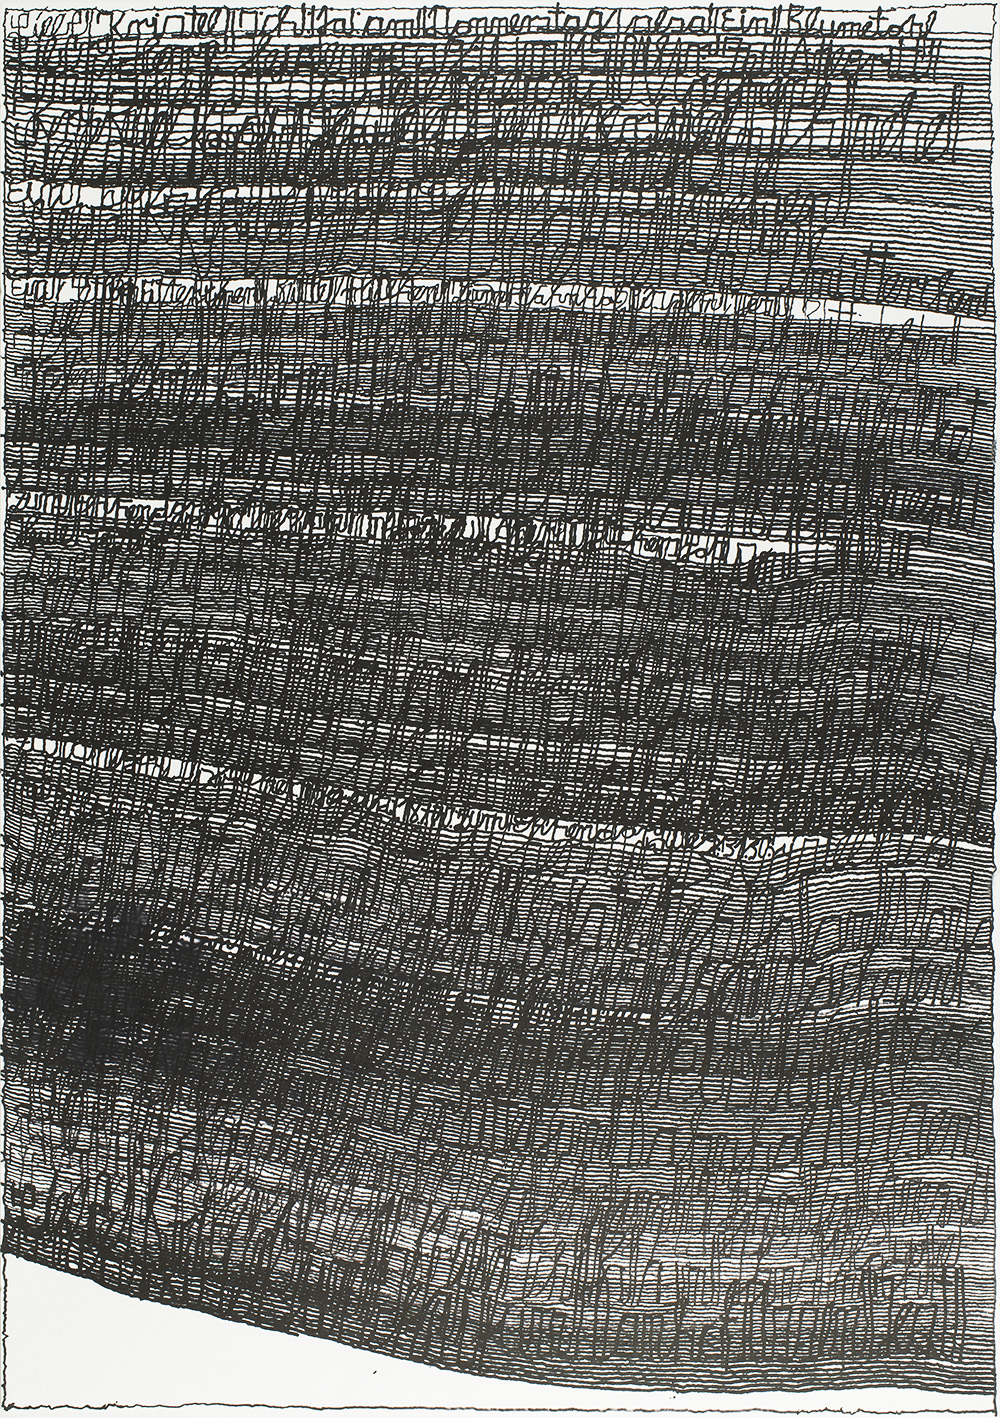 "Harald Stoffers,  Brief 164 , March 10th, 2012, ink on paper, 39.25"" x 27.5"", image courtesy Cavin Morris Gallery"